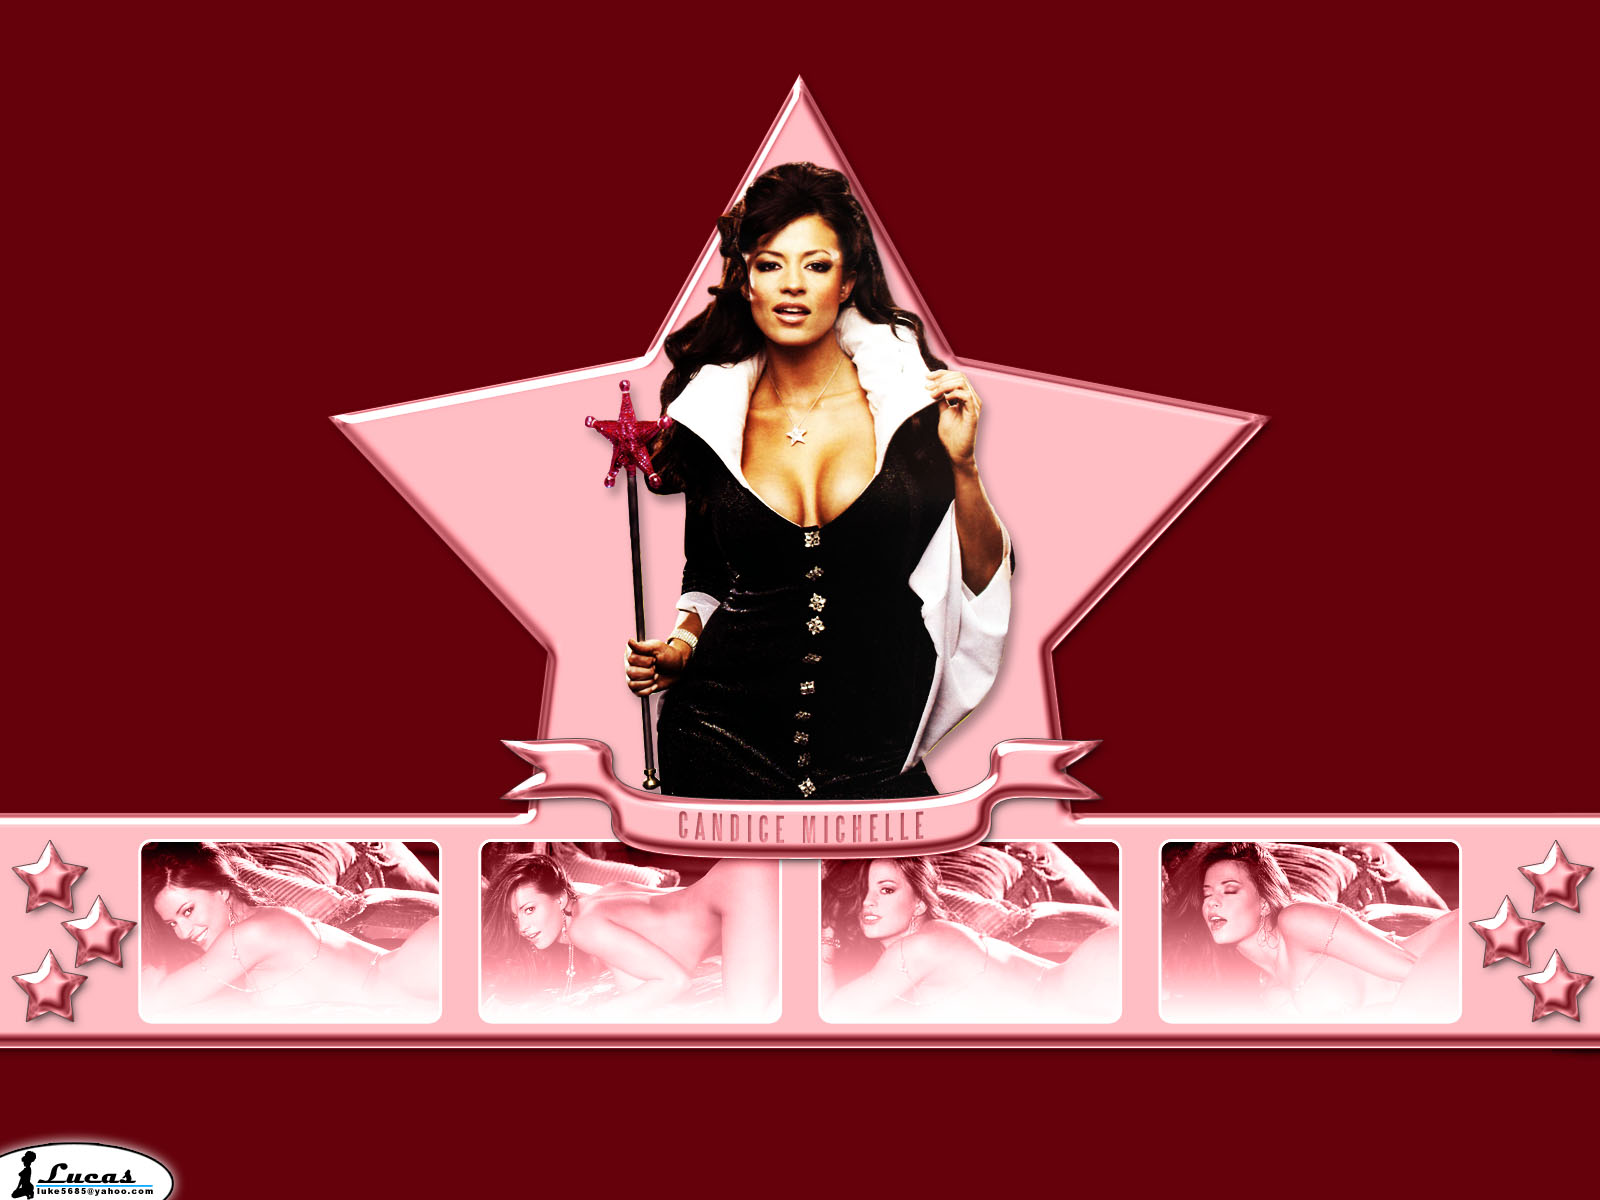 You are viewing the Candice Michelle wallpaper named Candice michelle 6.